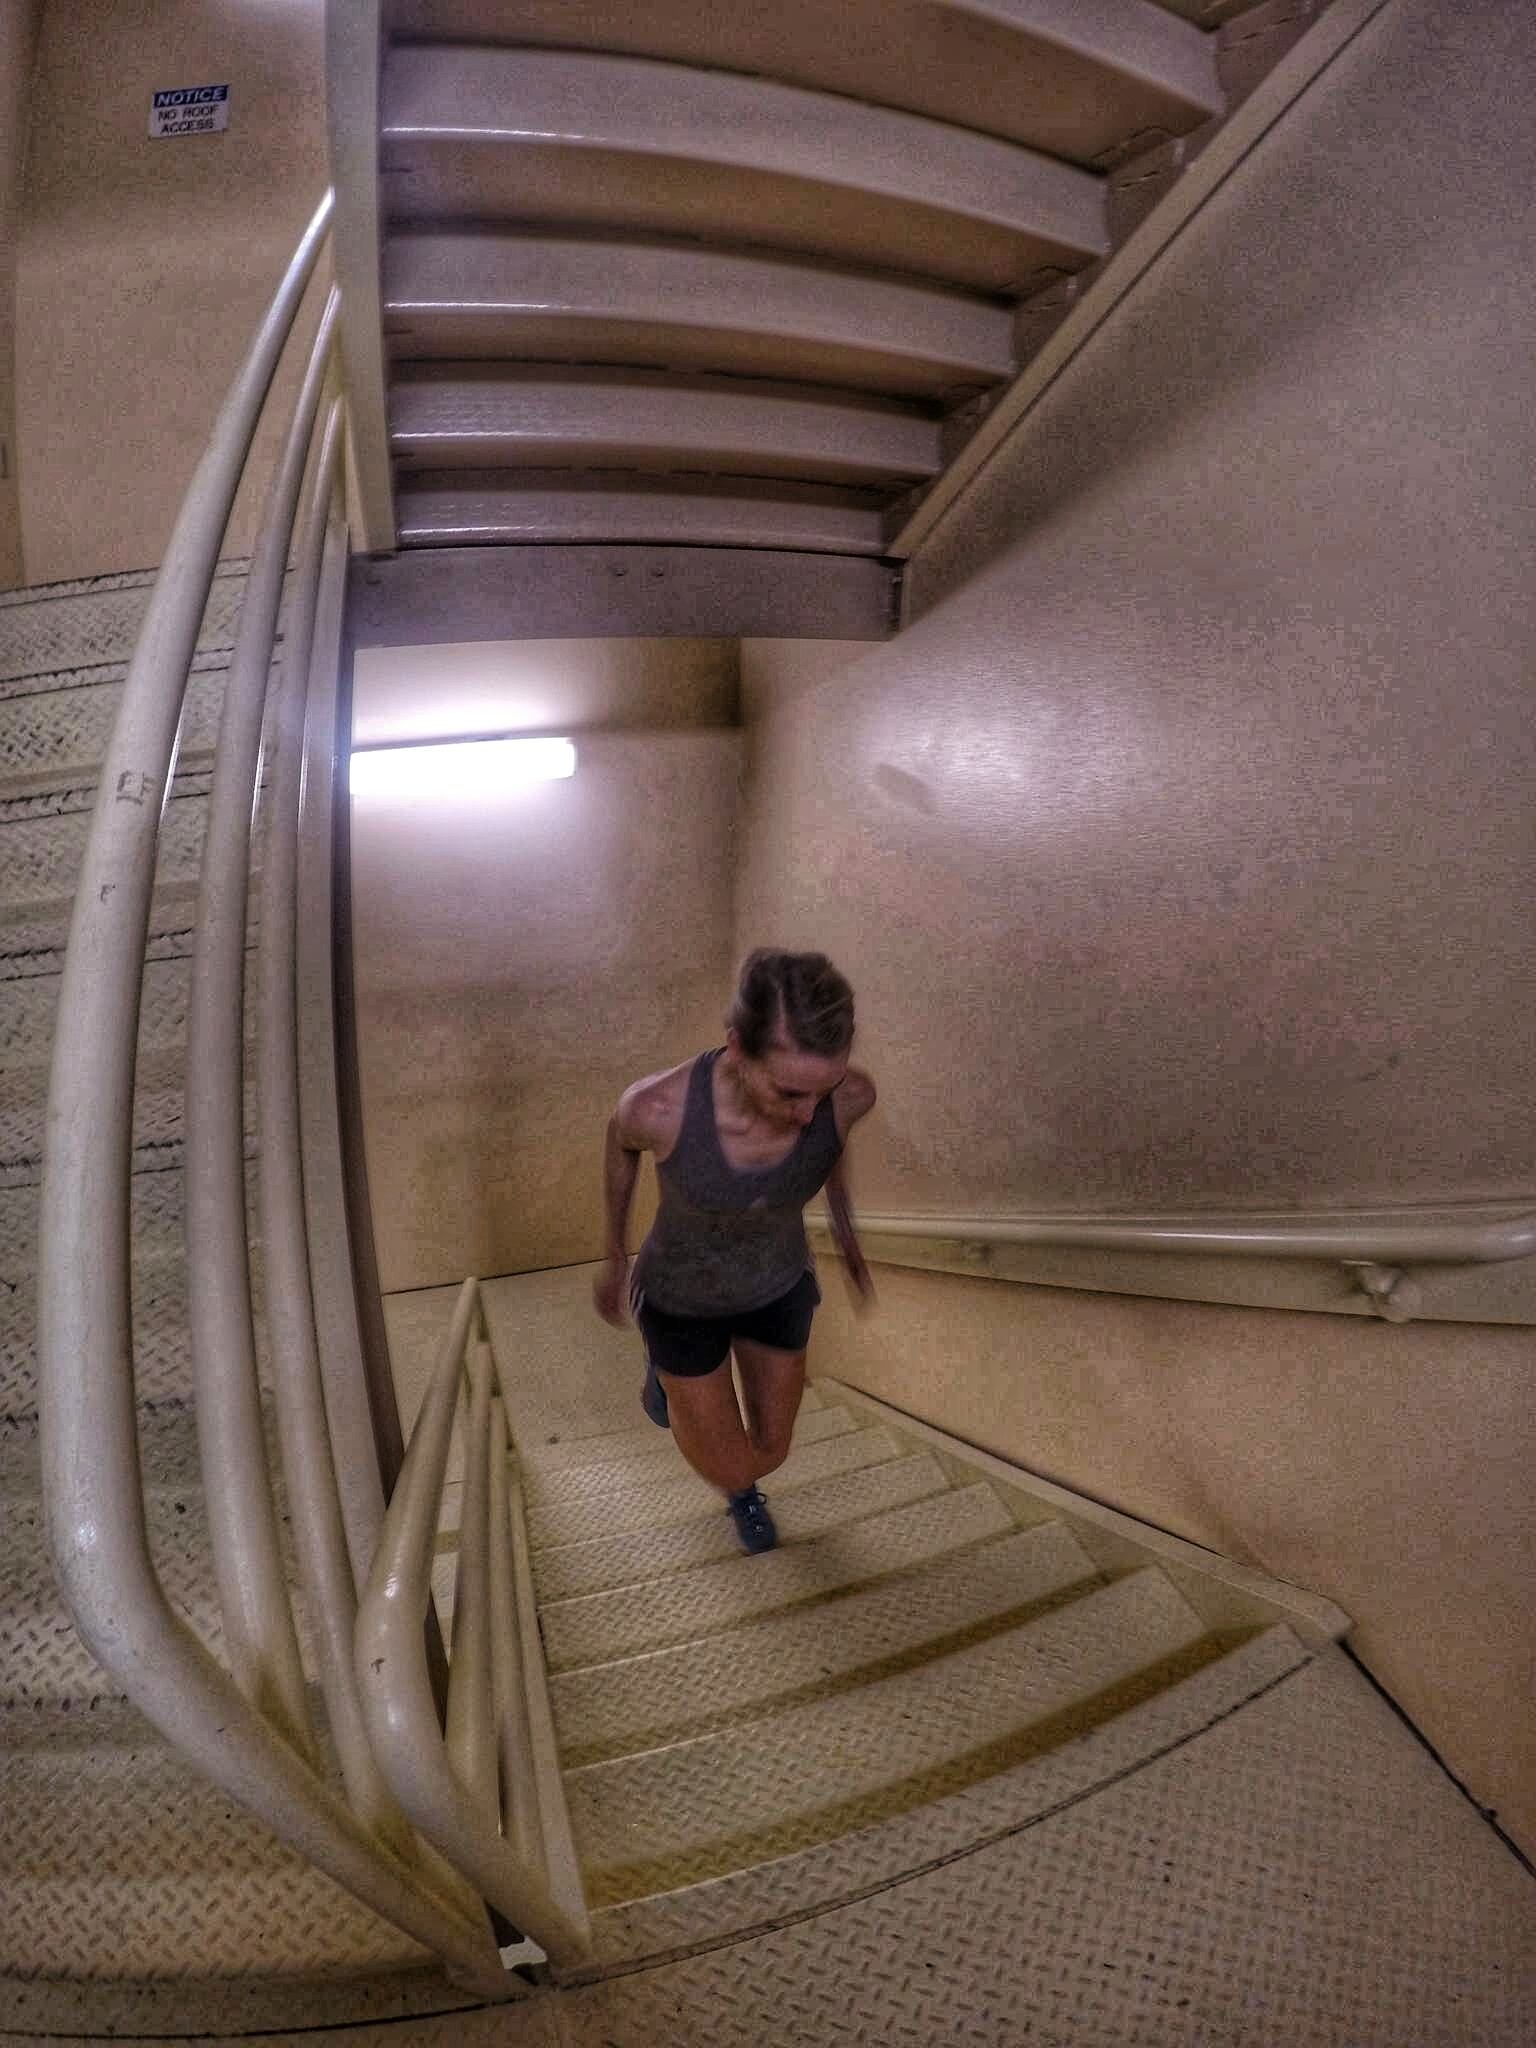 No gym in your hotel? Looking for a quick workout to get your heart pumping without paying a drop-in fee at a local gym? Use the stairwell to run stairs!!!